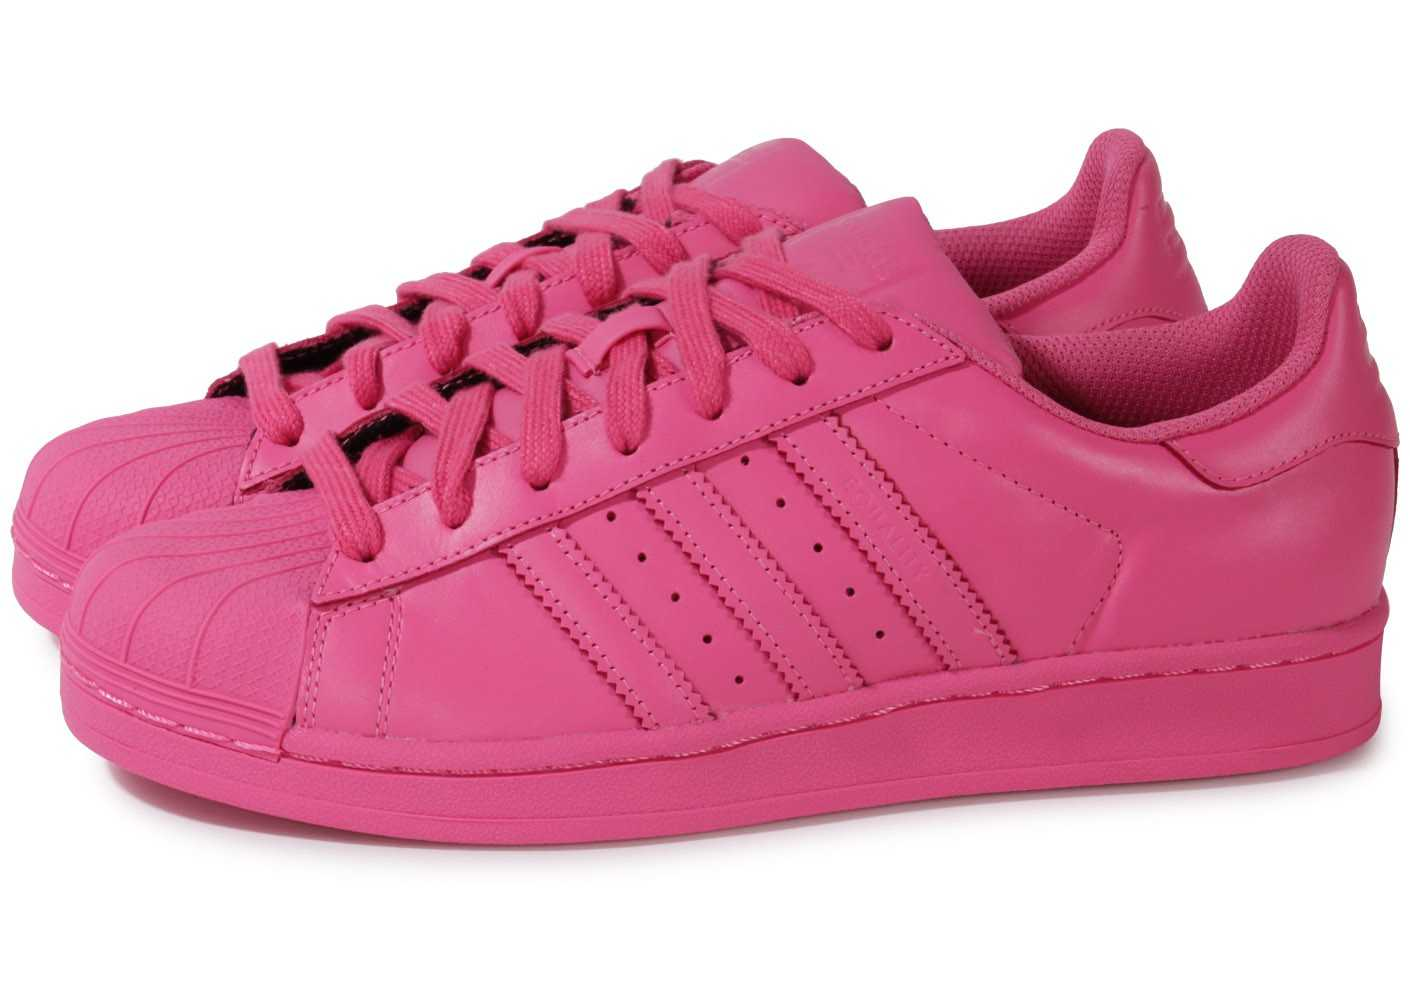 adidas superstar color rose